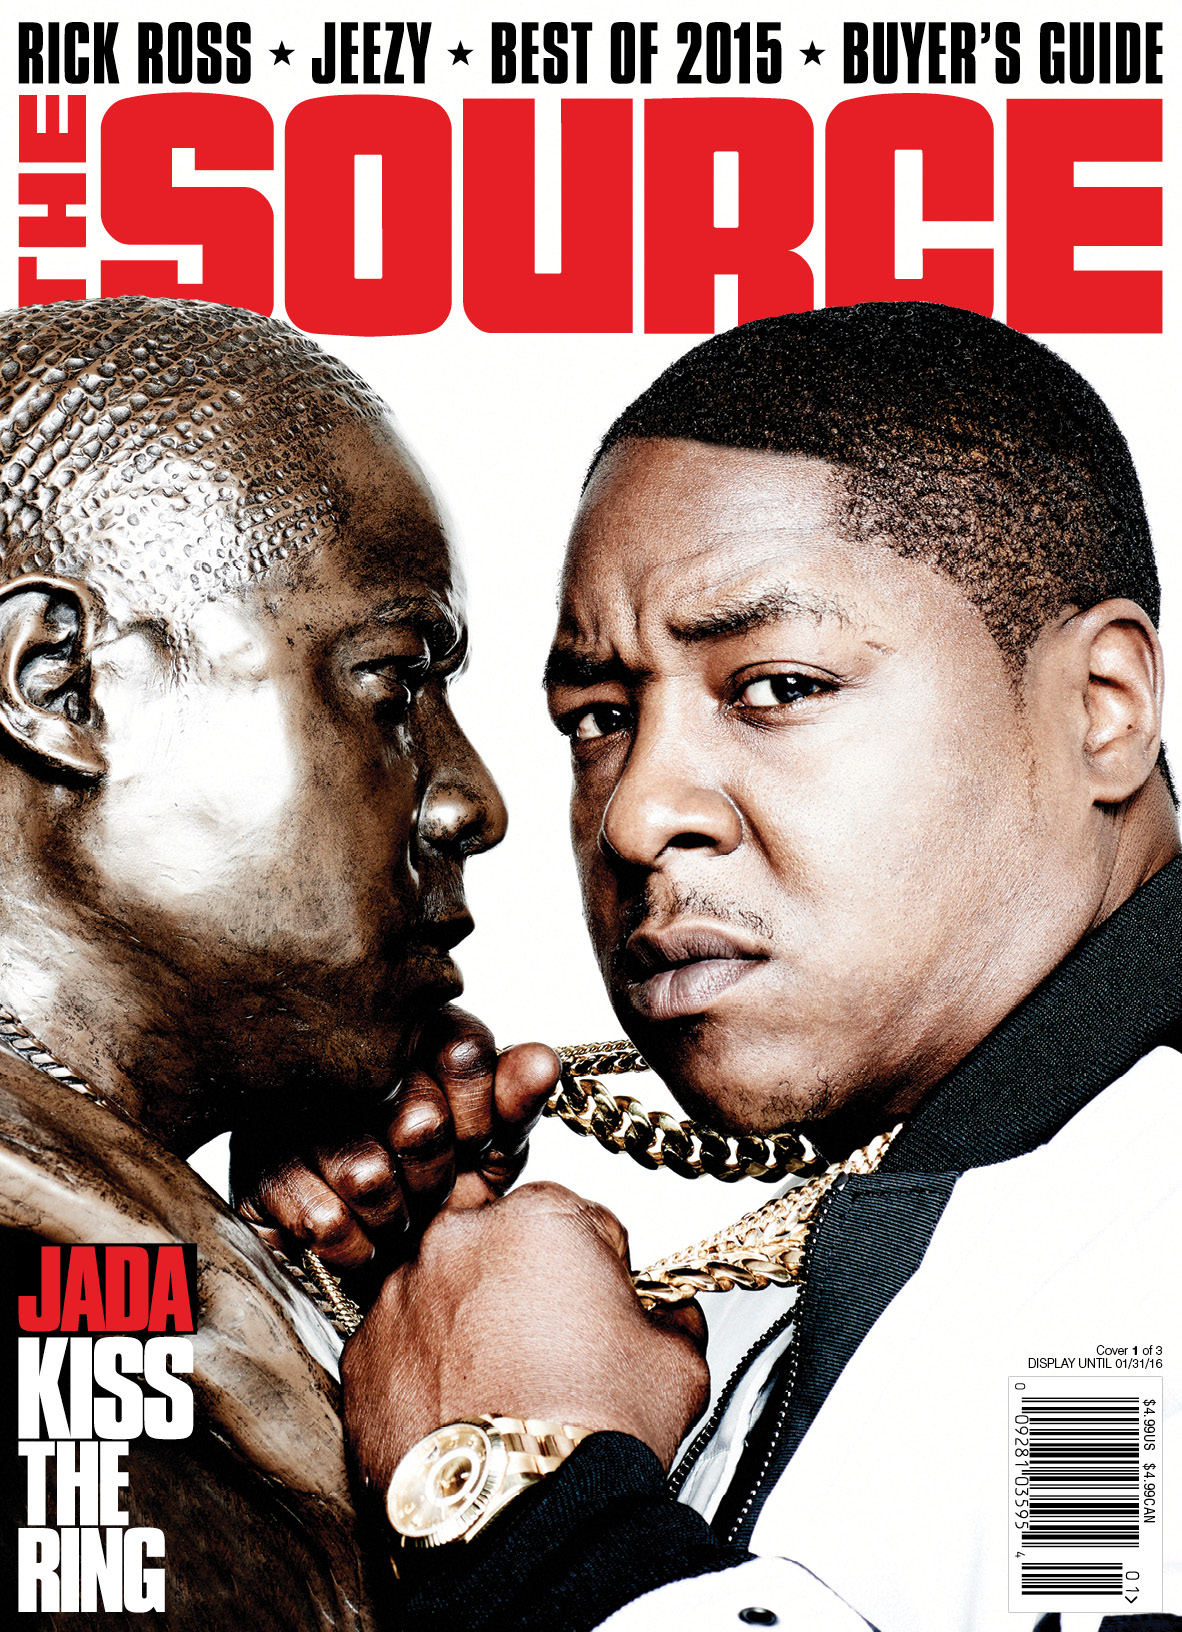 The Source Holiday Issue 2015 Jadakiss Cover 2 Of 3